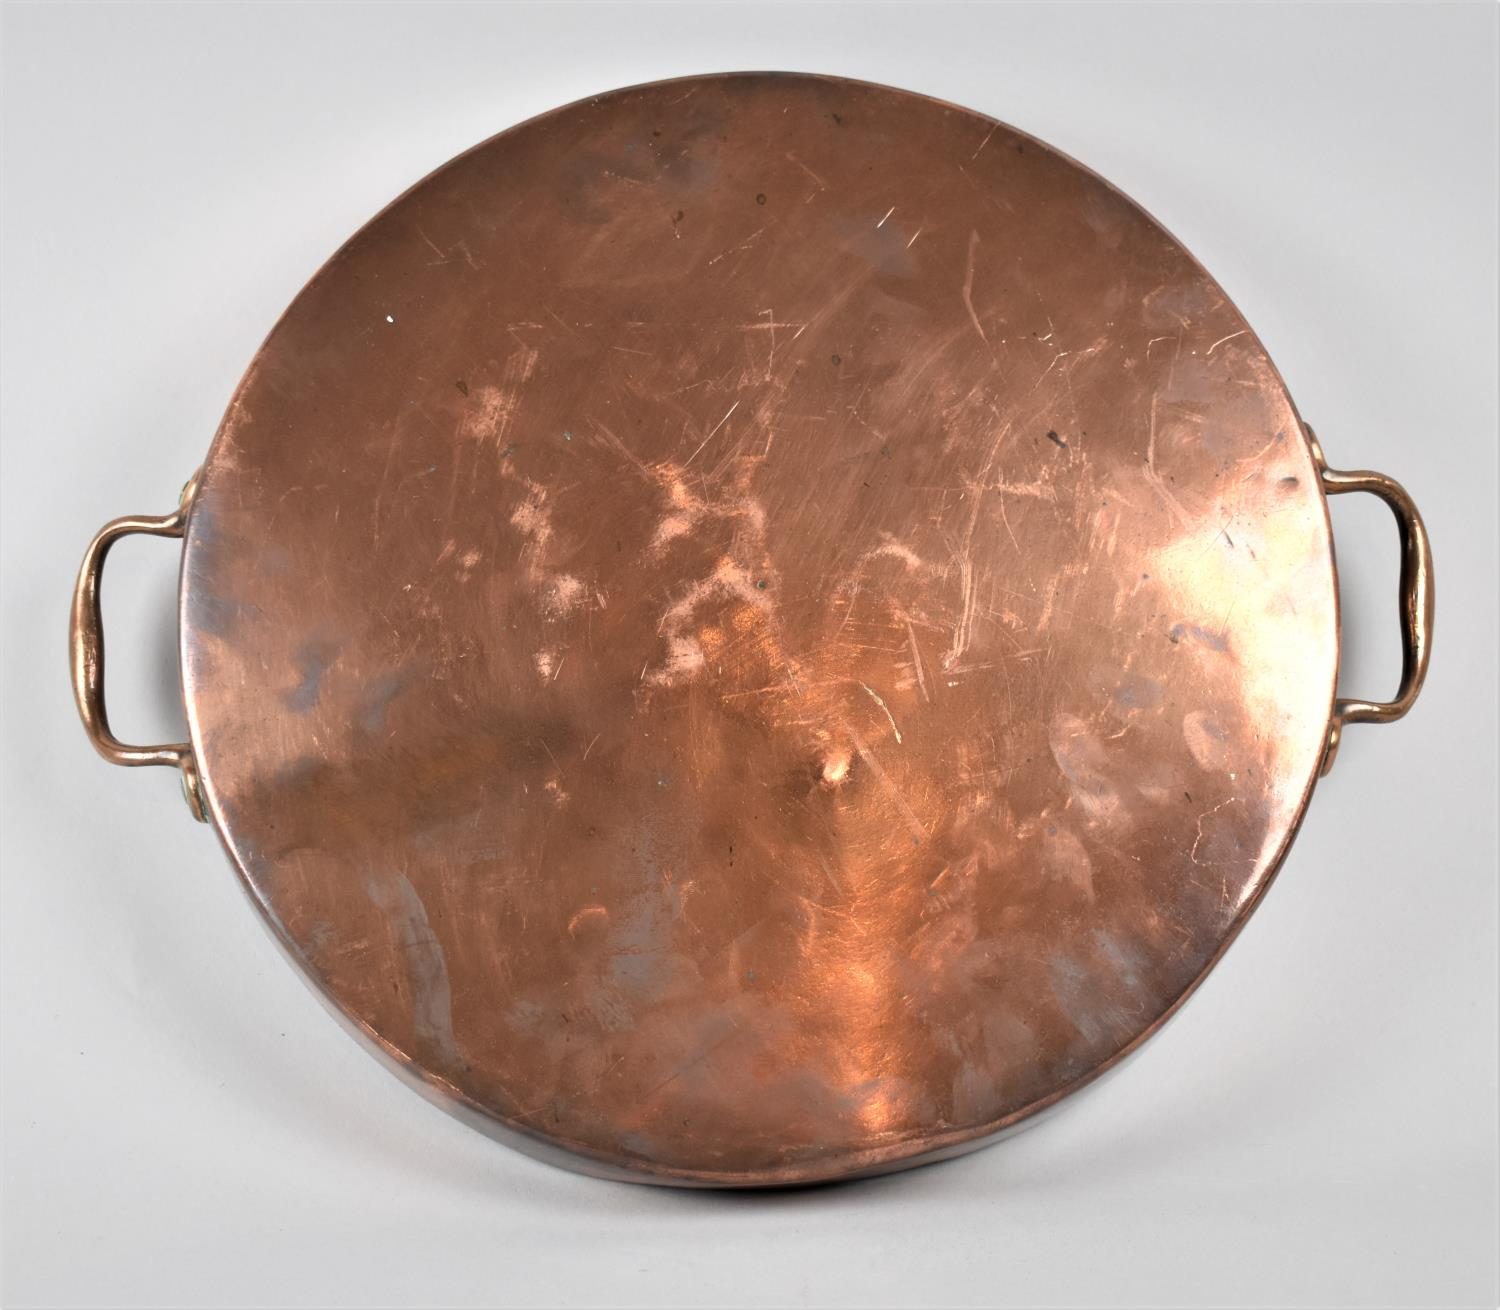 A Victorian Copper Saucepan Lid with Two Handles, 35.5cm Diameter